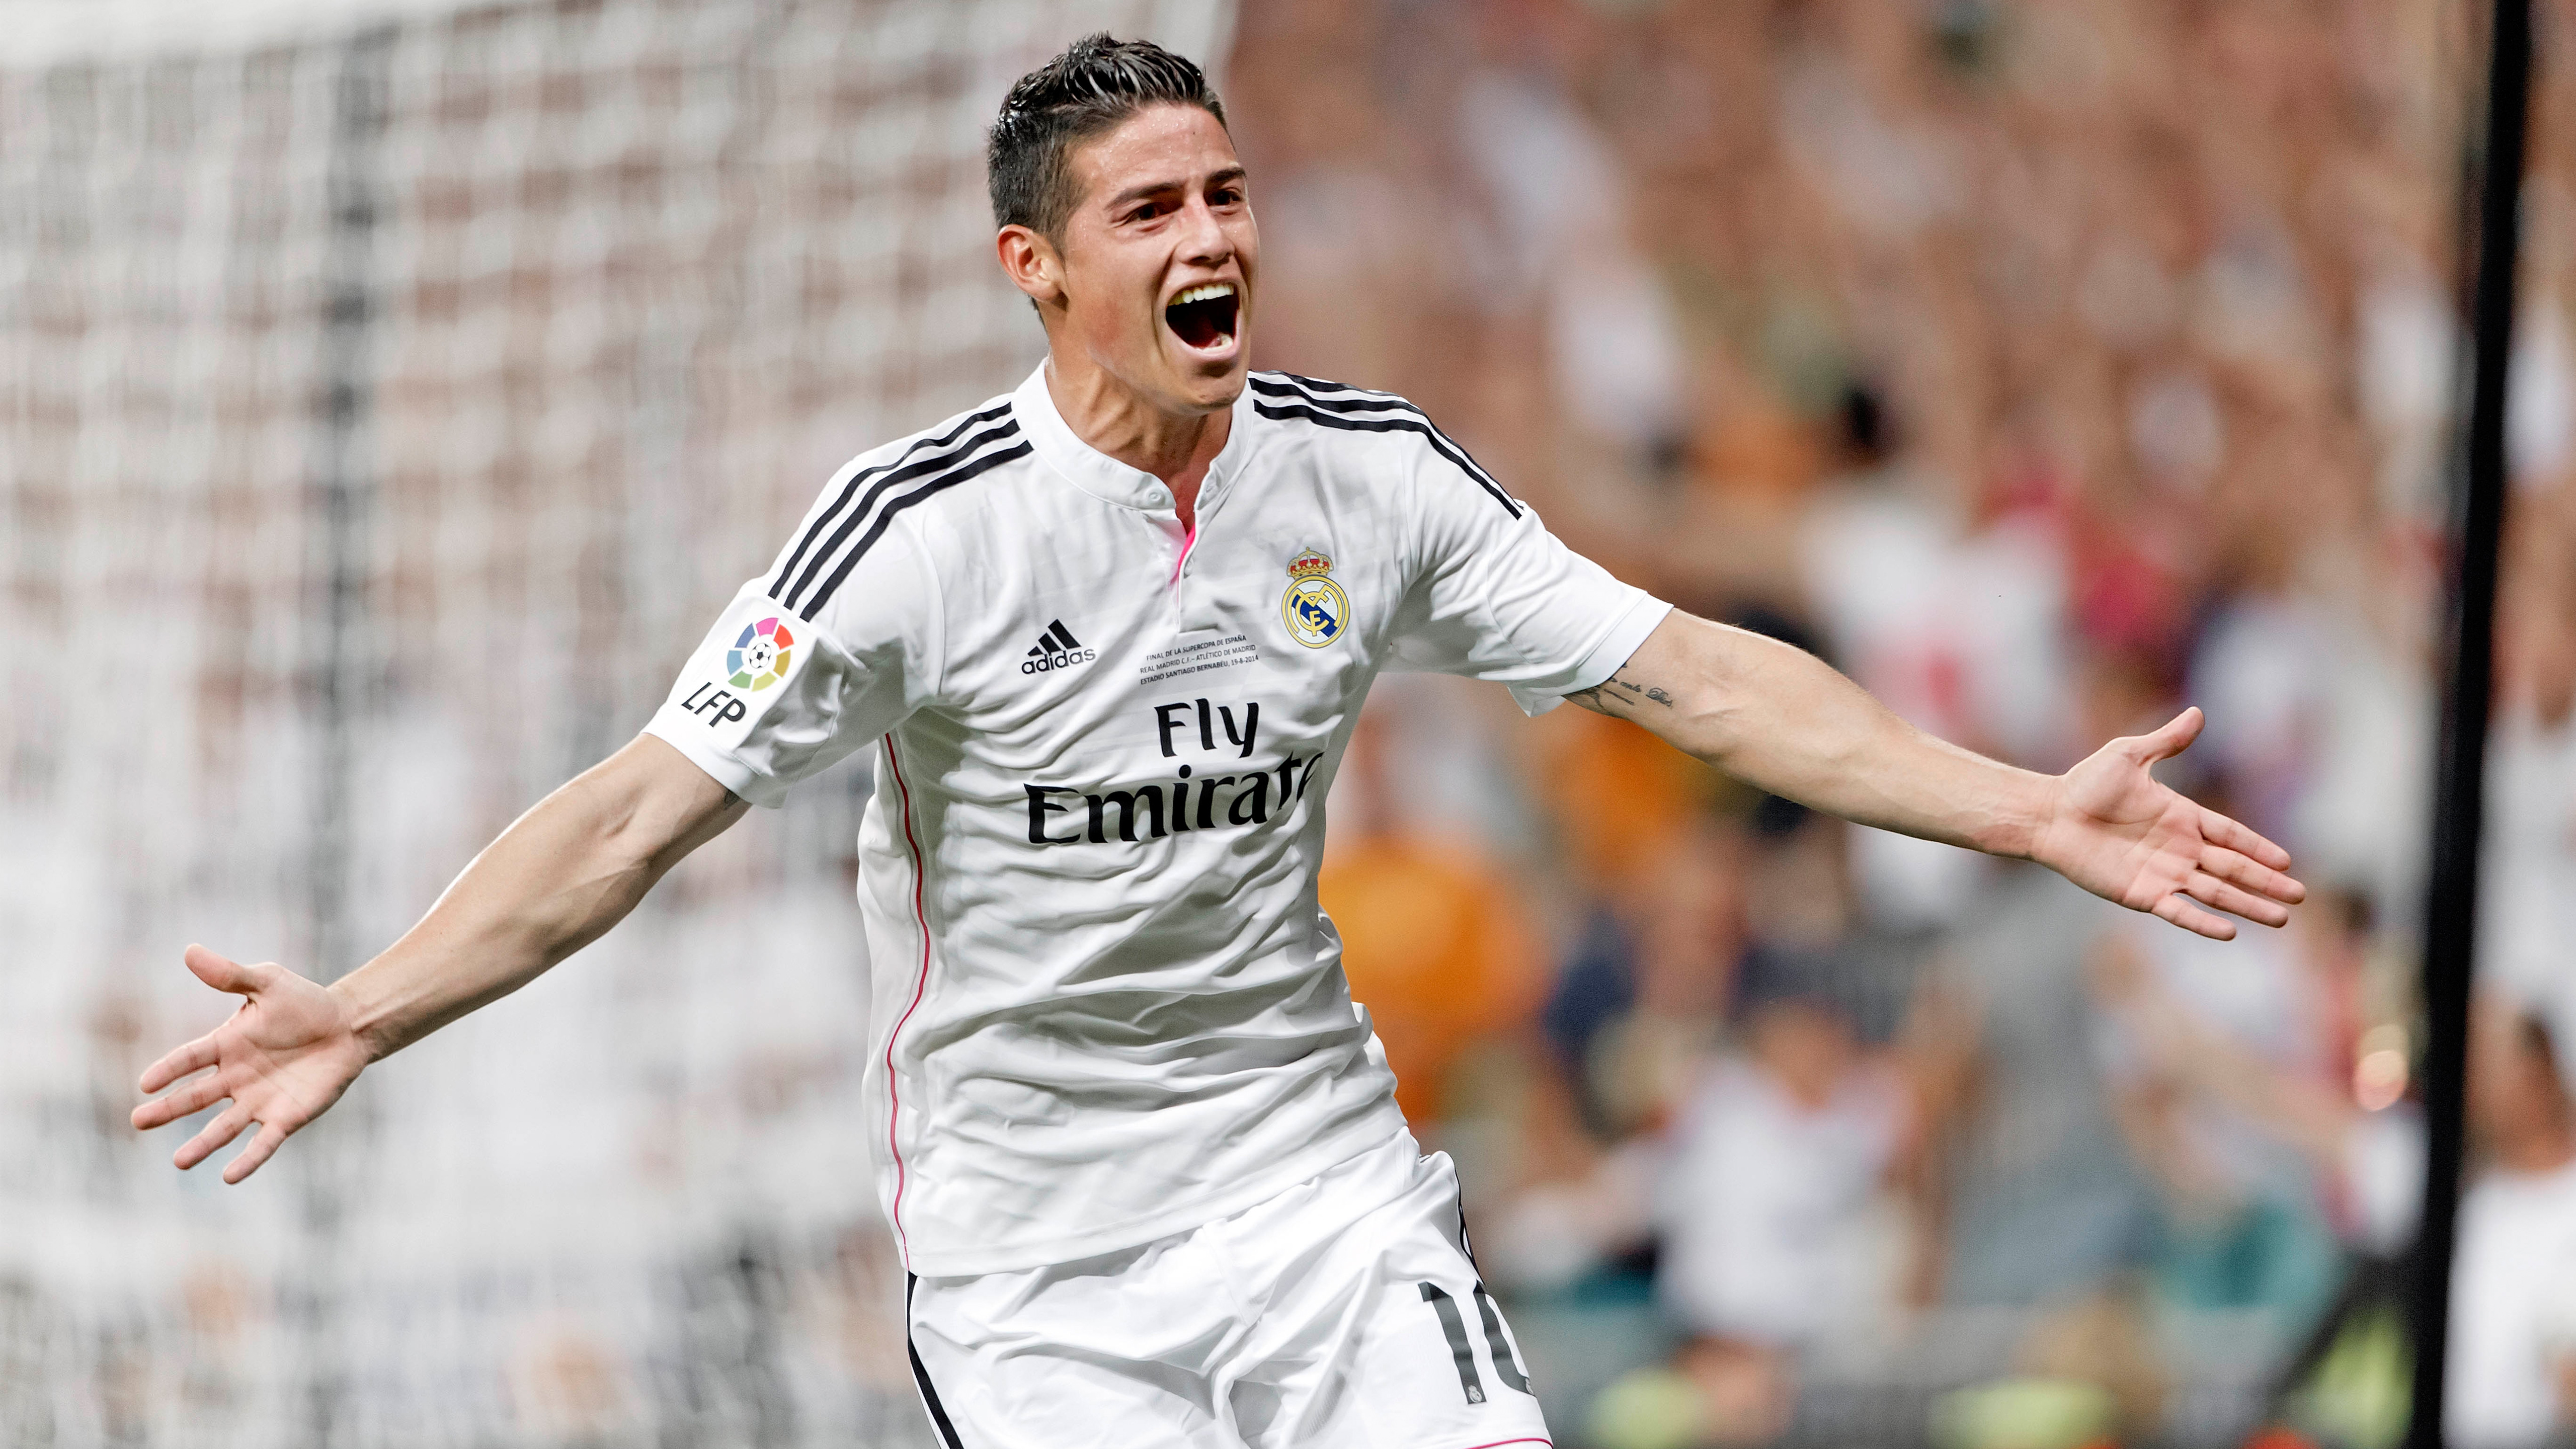 af4a1f10556 Report: United favourites to sign James Rodríguez from Real Madrid